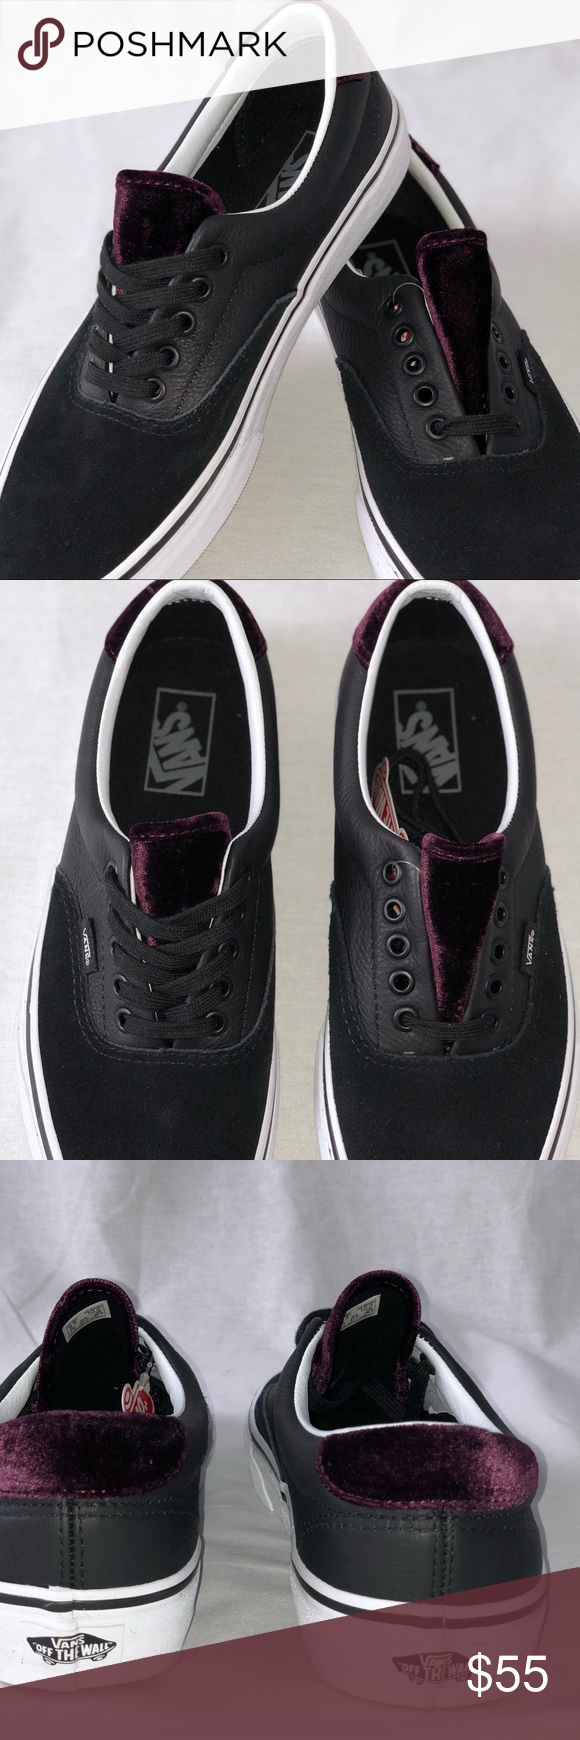 bc1c8c2f71 Vans Era 59 Velvet Black Red Unisex Skate Shoes Vans Era 59 Velvet Black Red  Unisex Skate Shoes. Size Women s 10